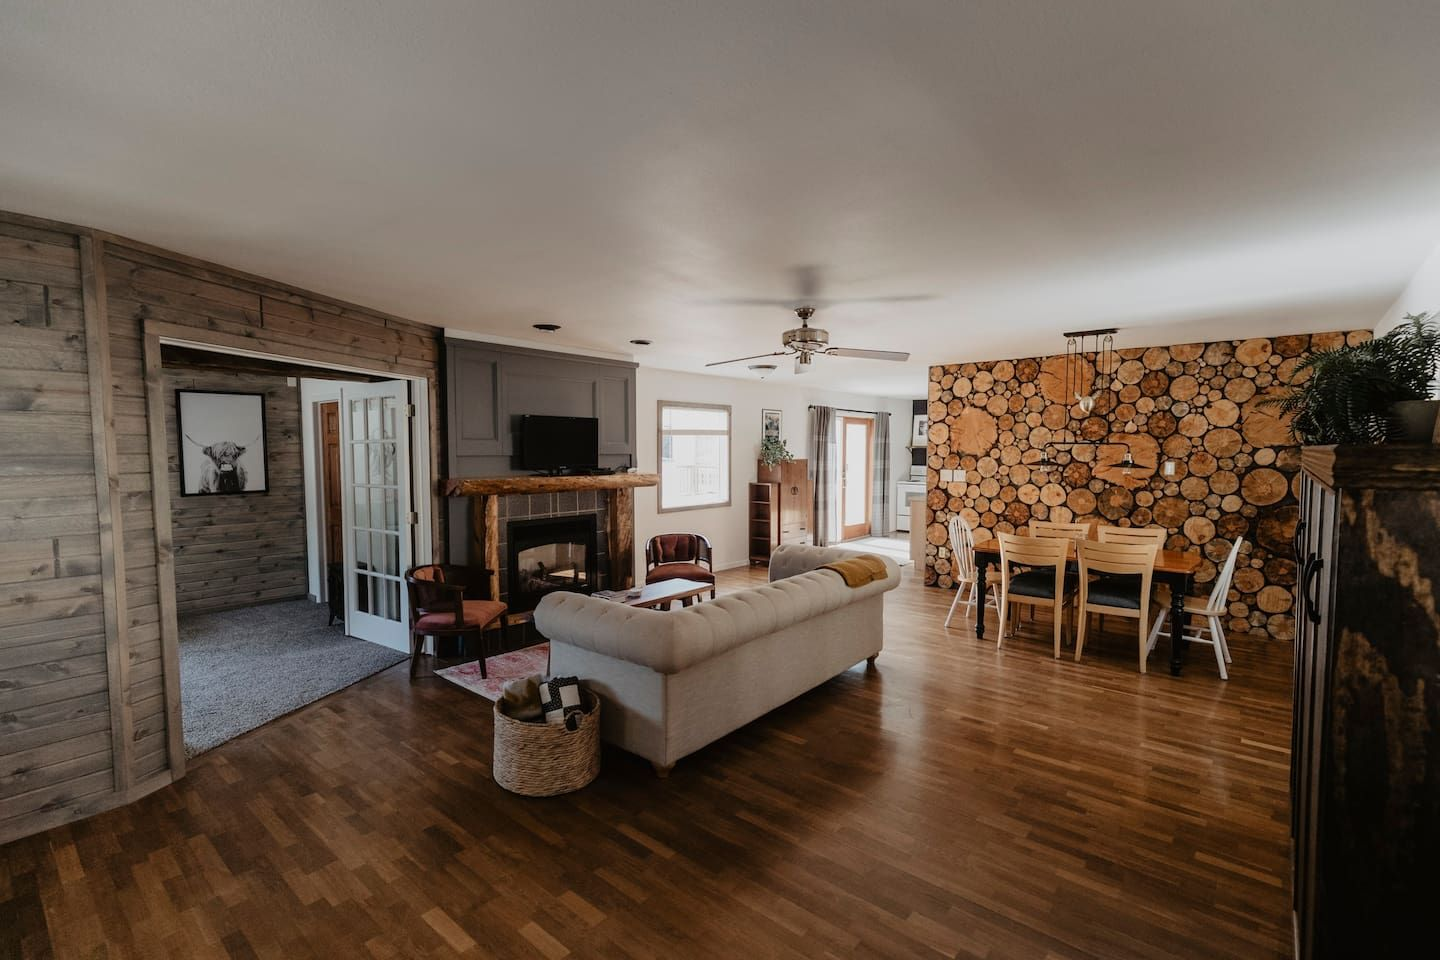 The Woodsley Apartments for Rent in Keystone, South